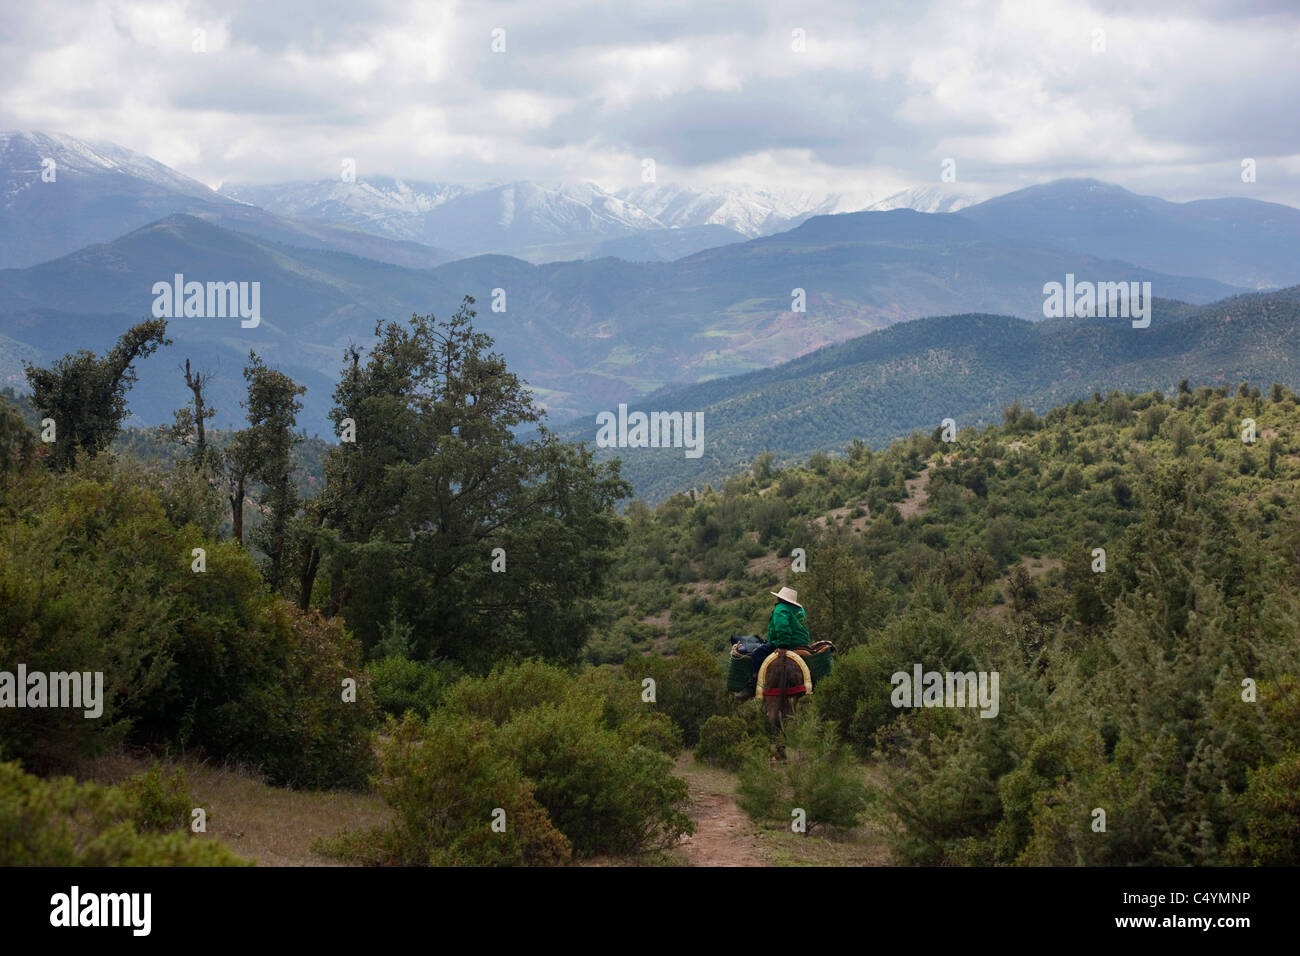 Local transportation in the Ourika valley below the Atlas mountains, Morocco. - Stock Image